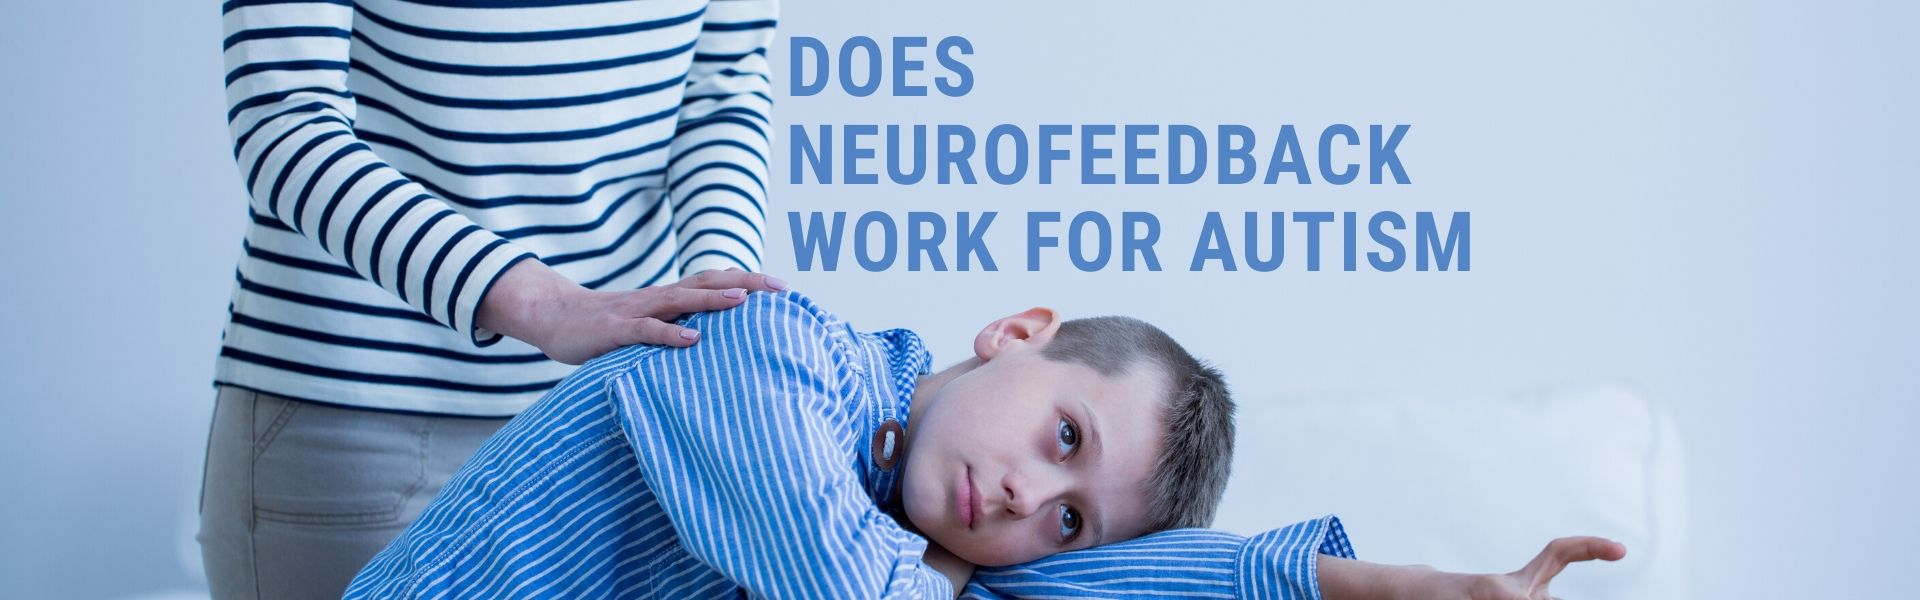 does neurofeedback work for autism banner